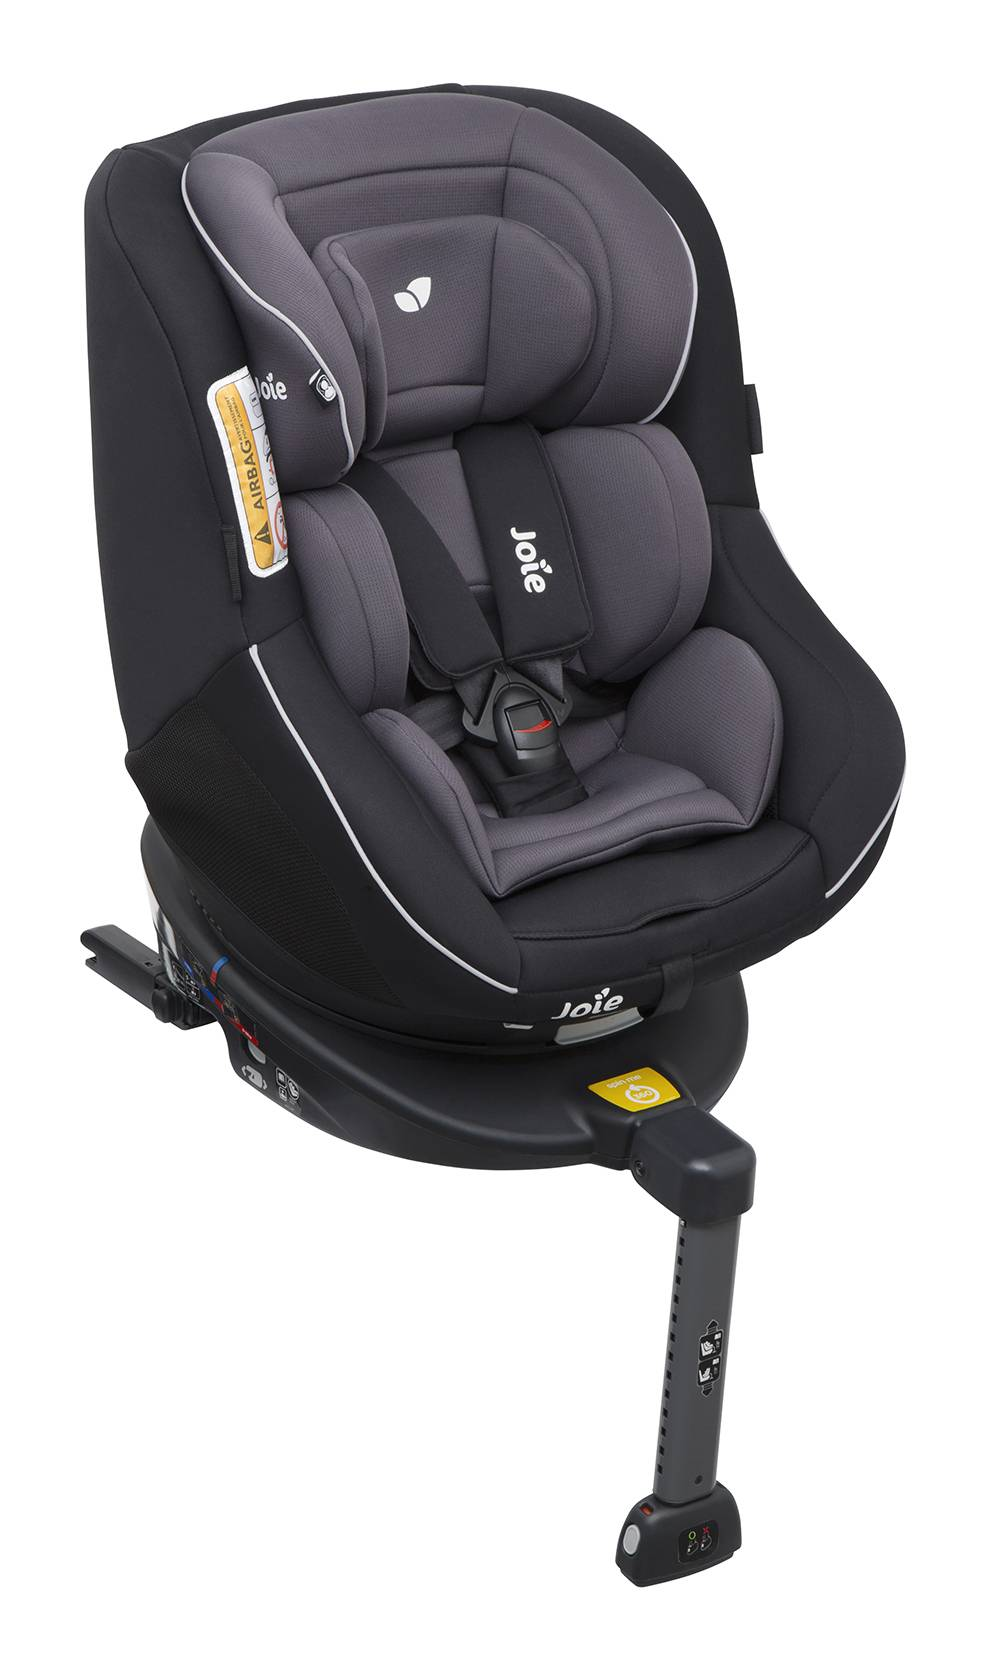 Is Joie 360 Isofix Only Joie Spin 360 Rotatable Baby Car Seat With Isofix Newborn